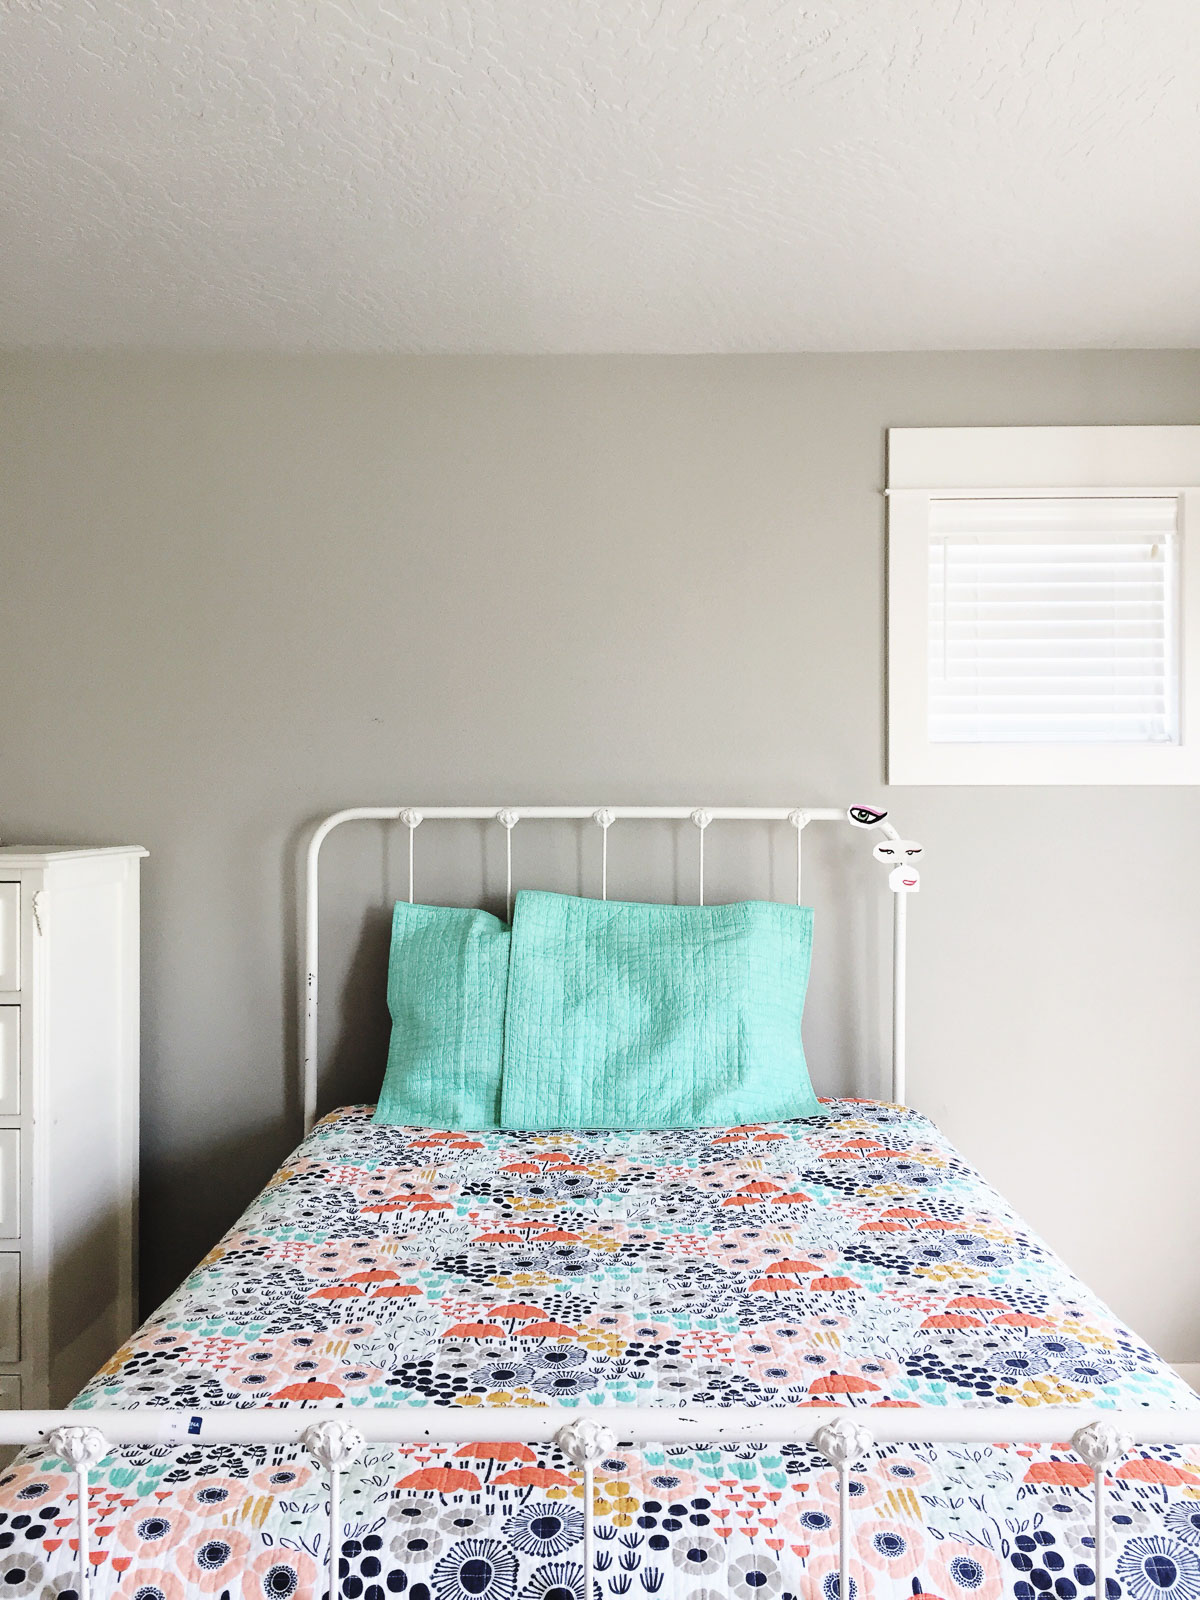 We are almost at the end of the Spring 2019 One Room Challenge, and have just one week left to put all the finishing touches on our daughter's bedroom makeover!